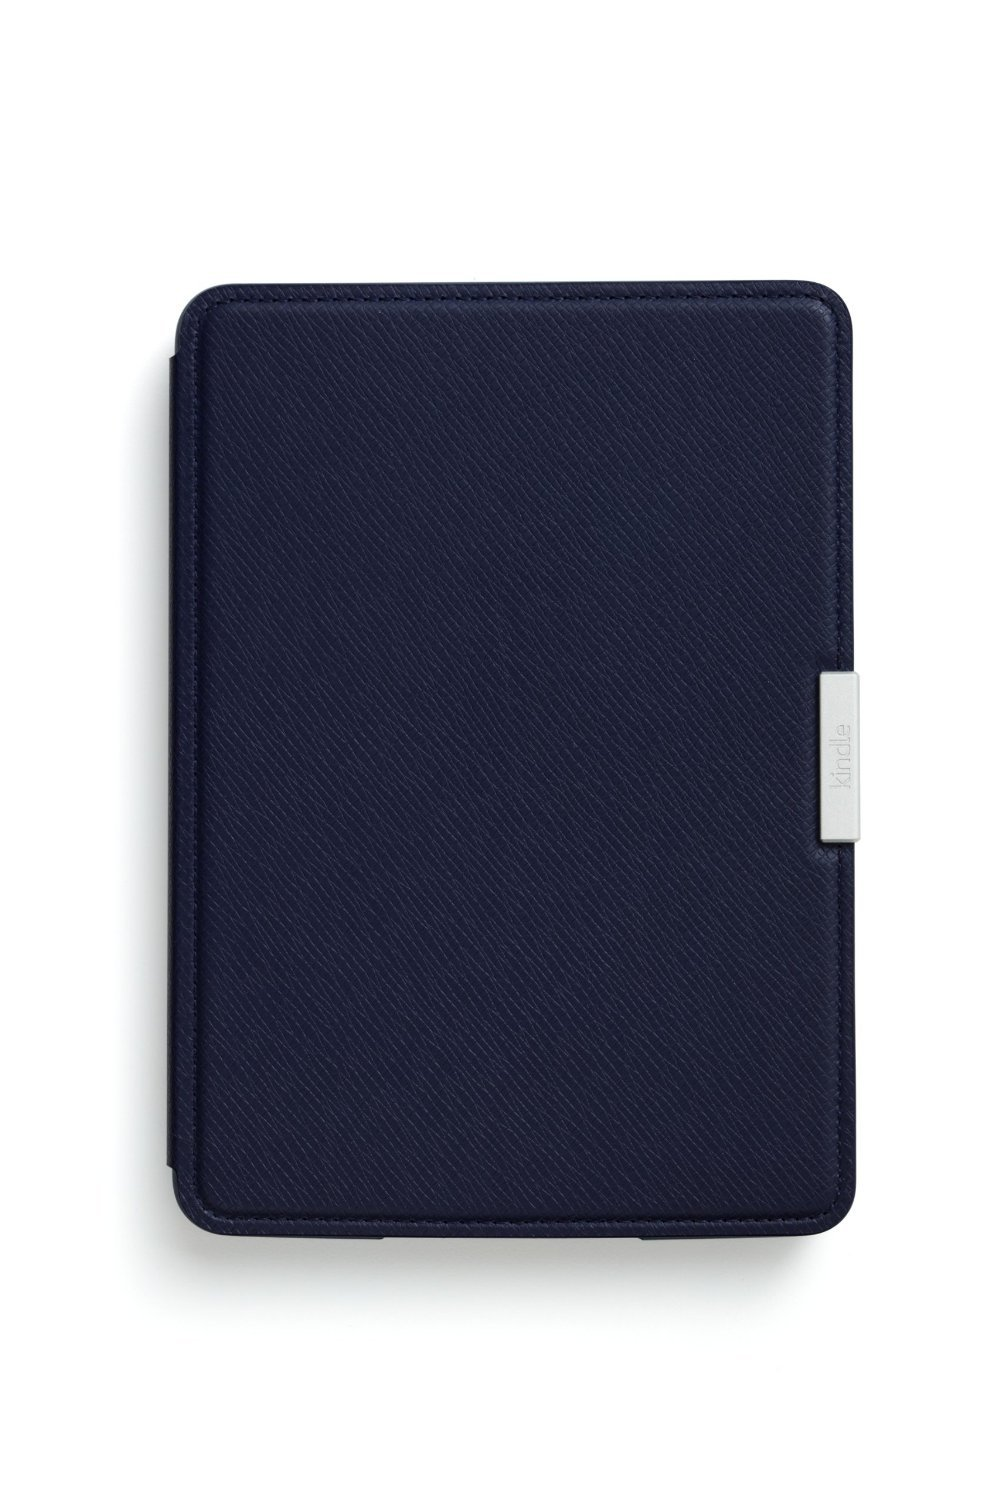 Чехол Leather Cover для Amazon Kindle Paperwhite Ink Blue (Темно-синий). Фото N5